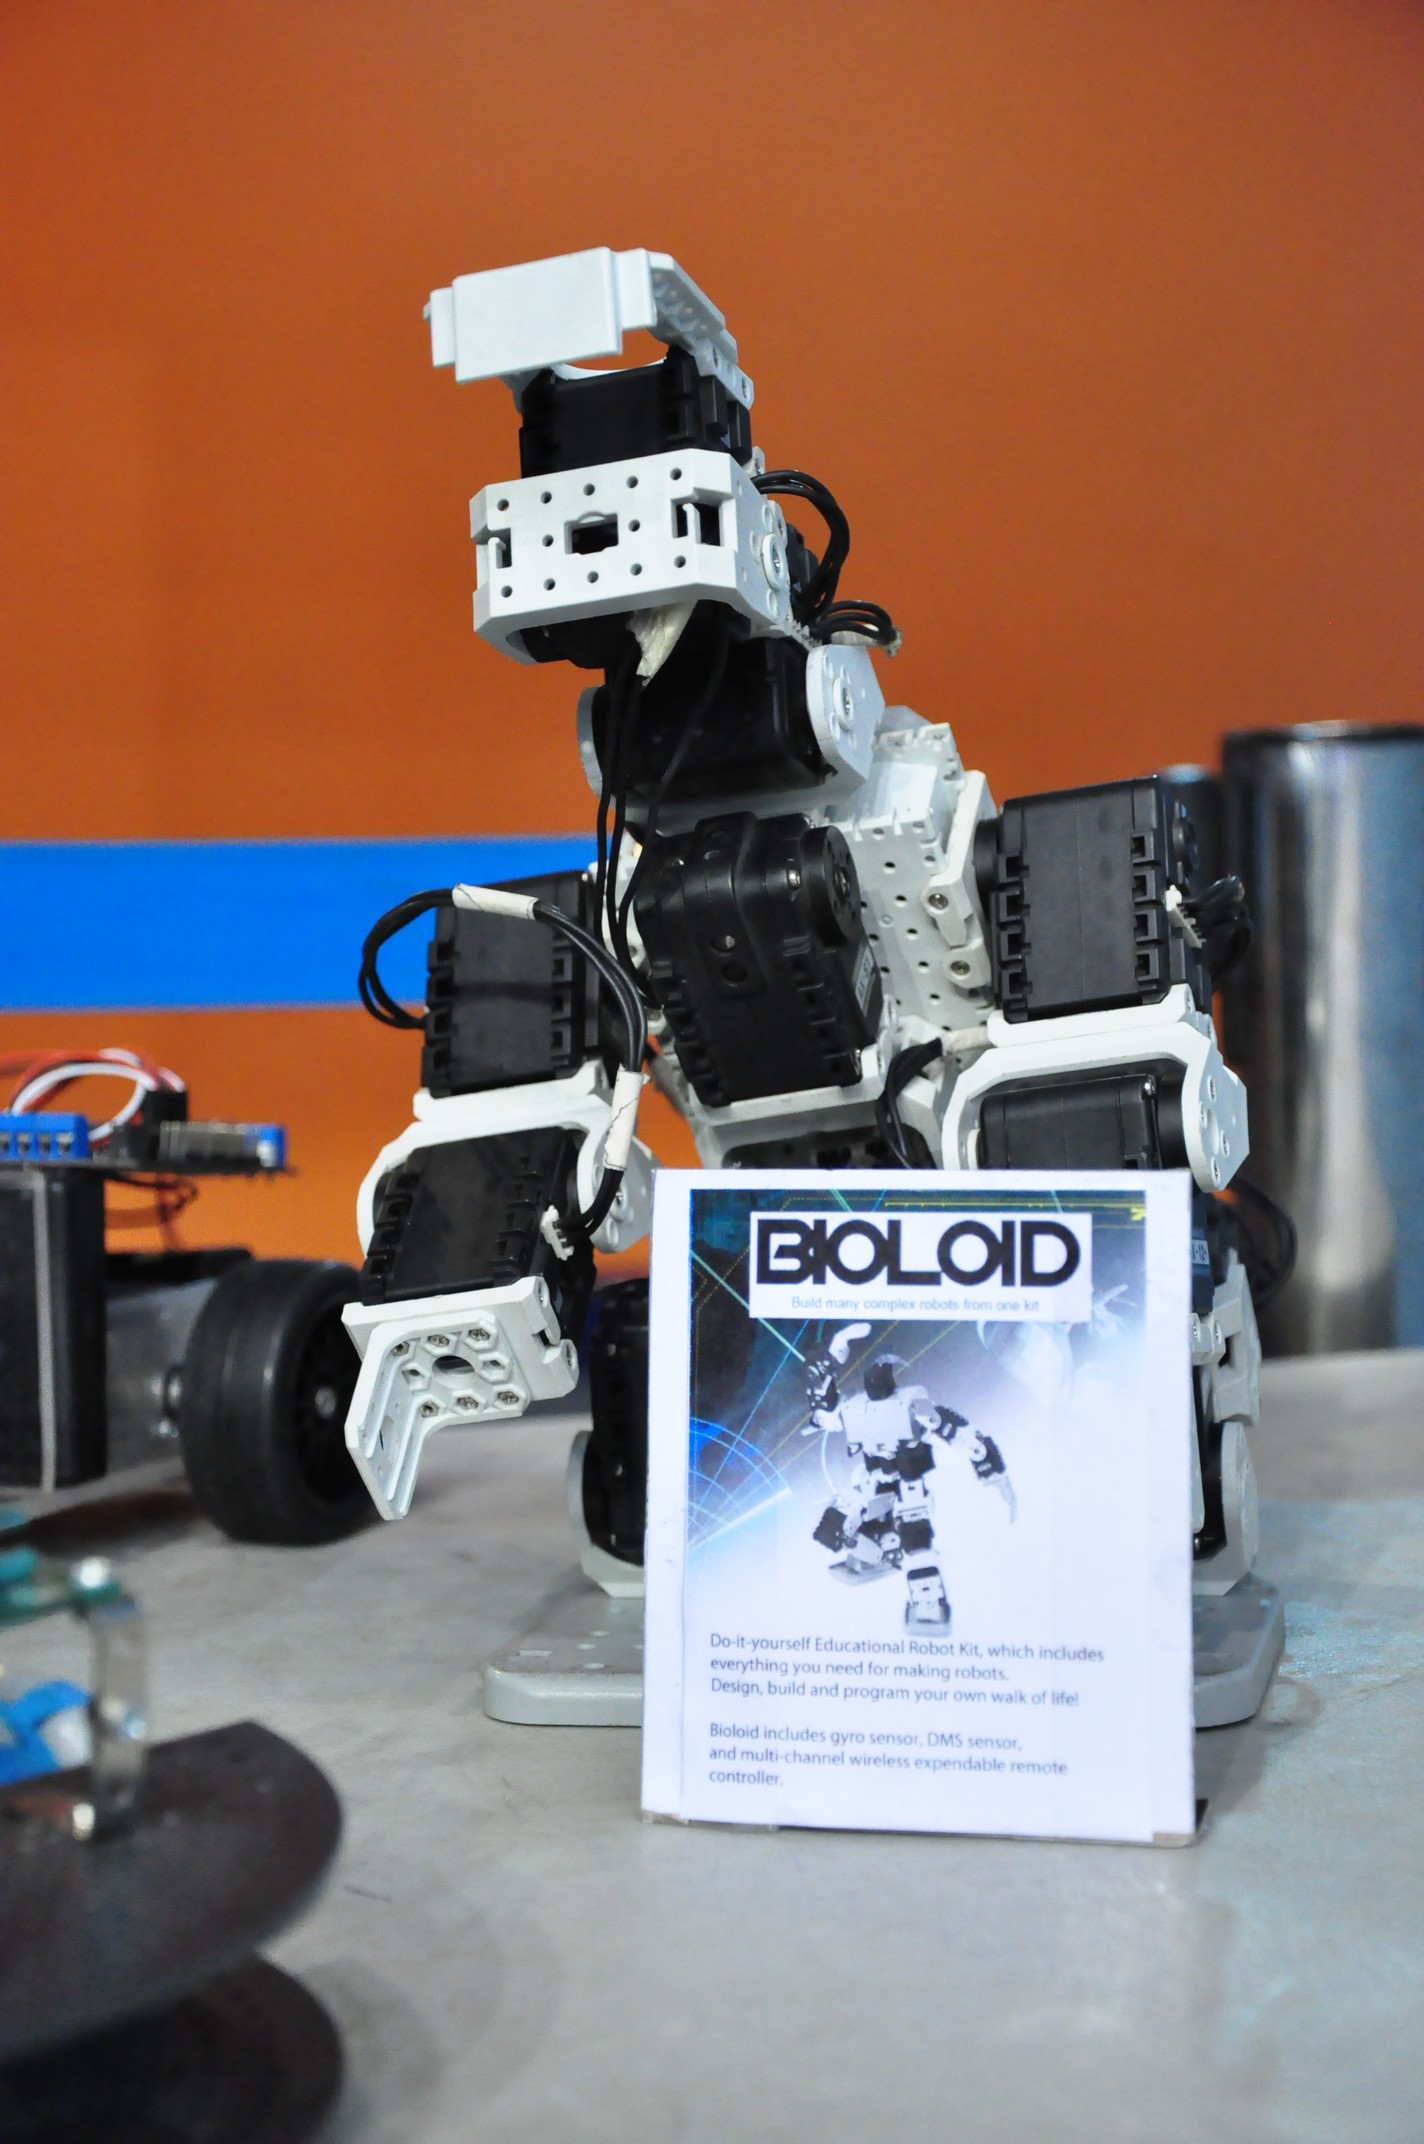 For Pinoy students, robotics is not just for nerds | SciTech | GMA